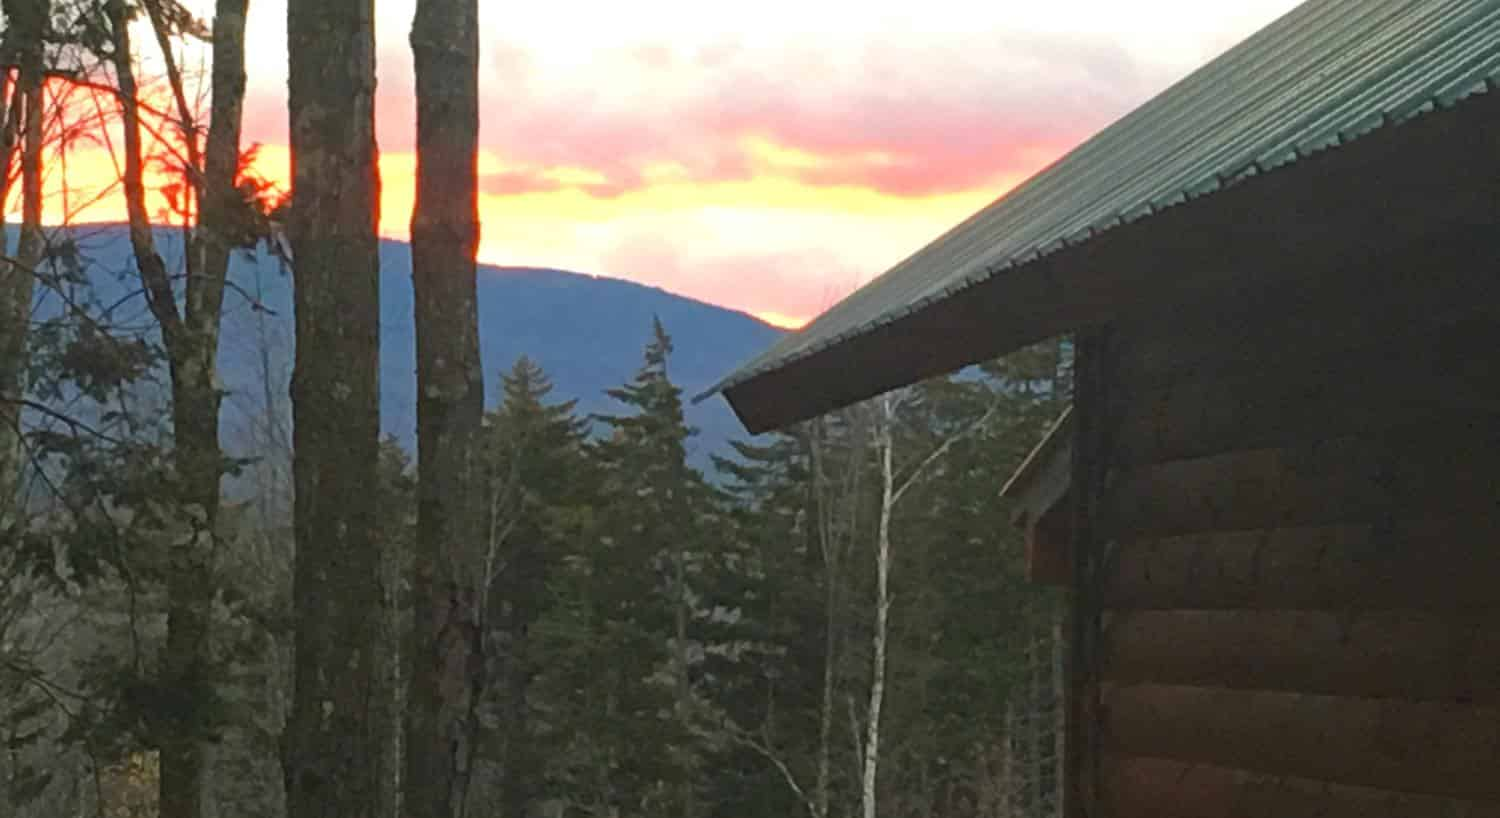 View from the side of a cabin of the sunset sky over distant hills and pine trees